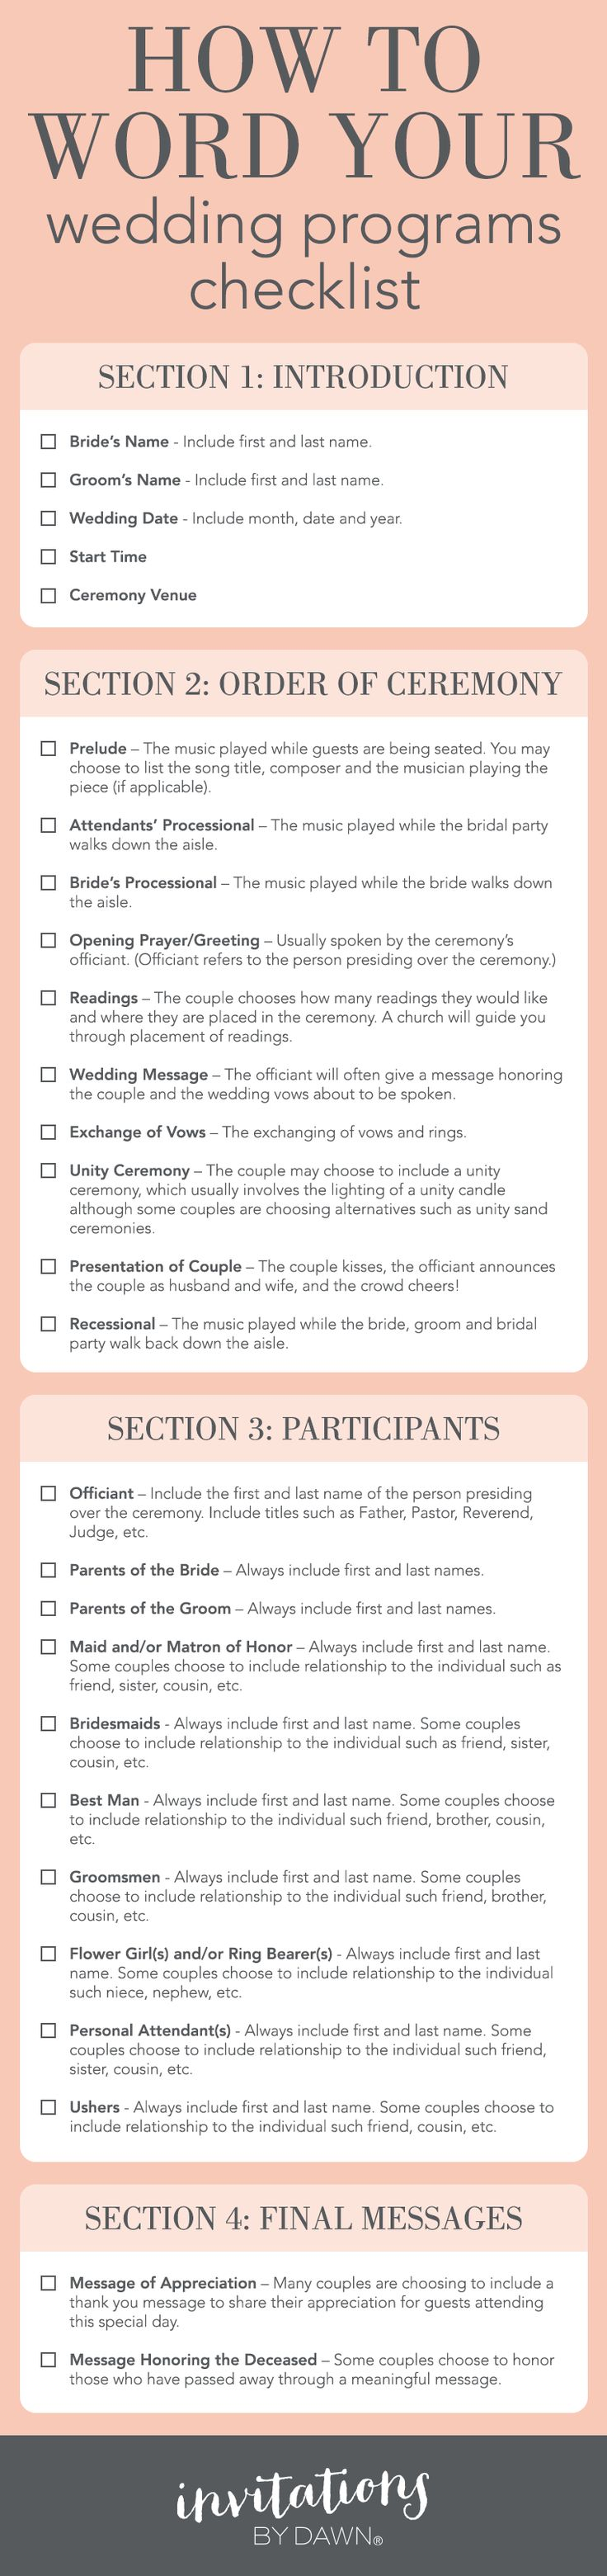 best 25 wedding ceremony checklist ideas on pinterest wedding